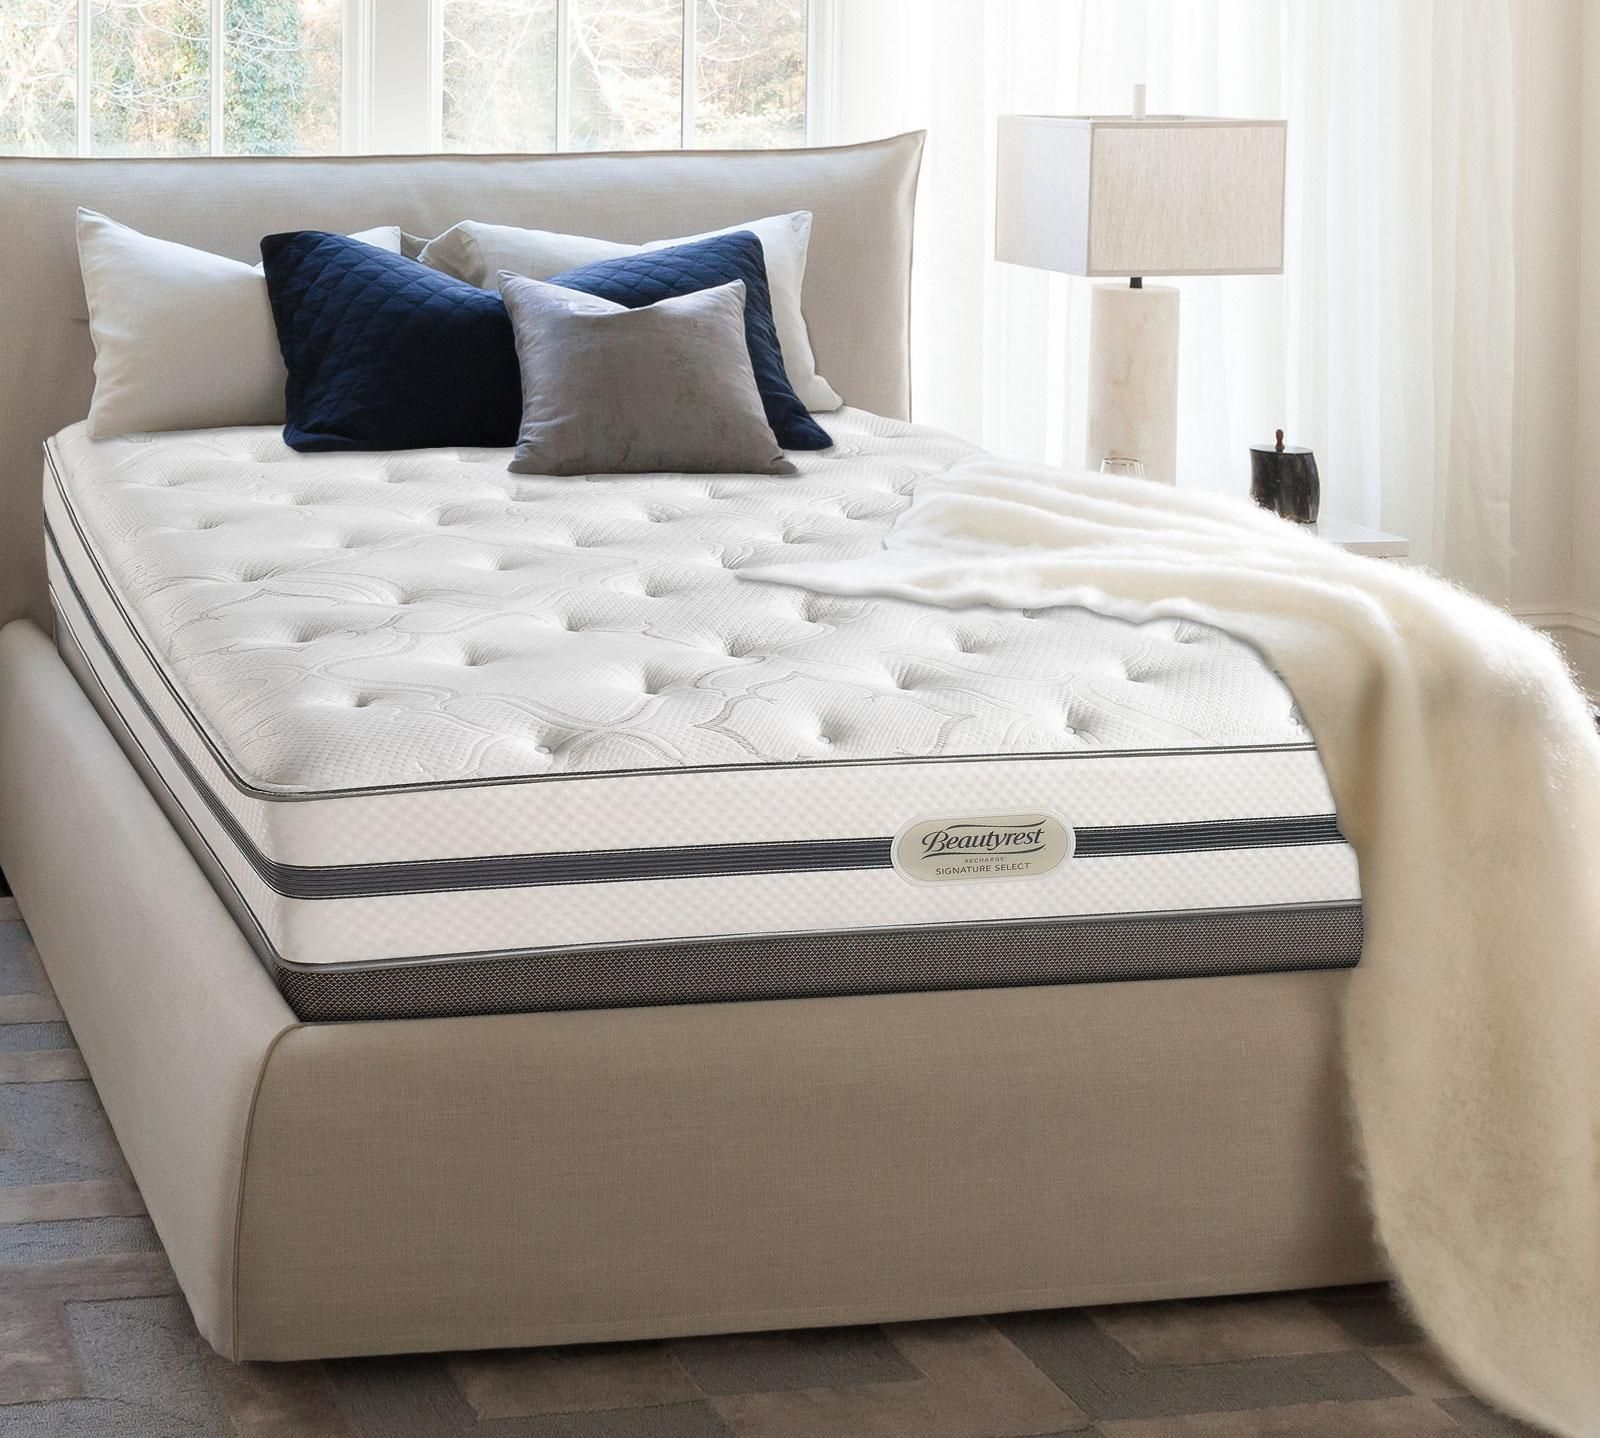 Shop For Your Simmons Beautyrest Recharge Signature Select Ashaway